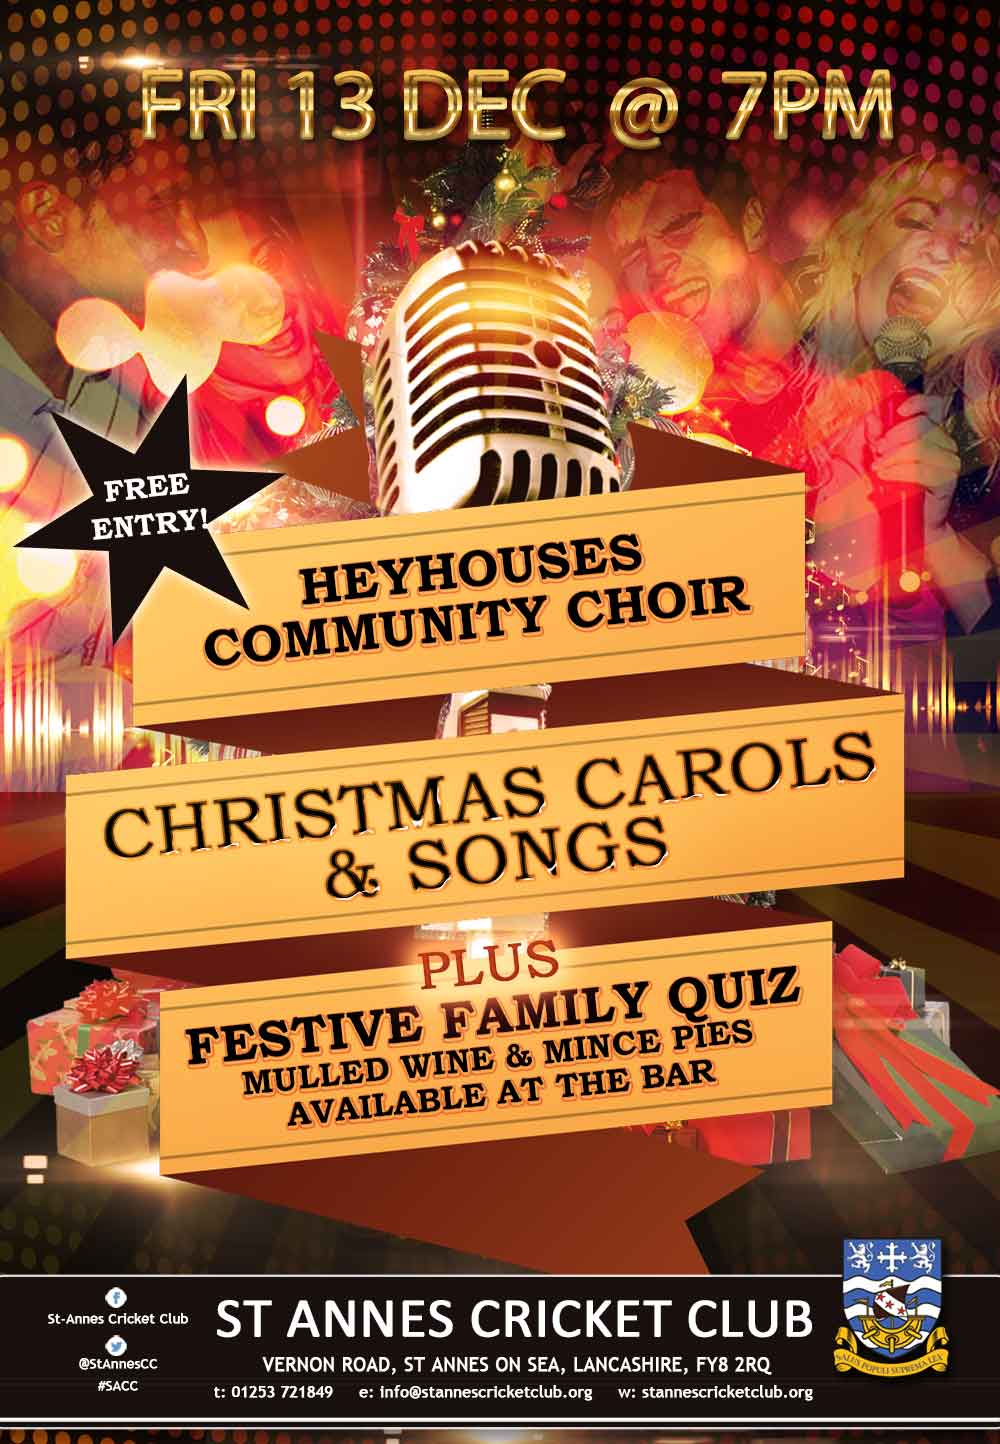 Heyhouses Community Choir Christmas carols & songs followed by a festive quiz at St Annes CC